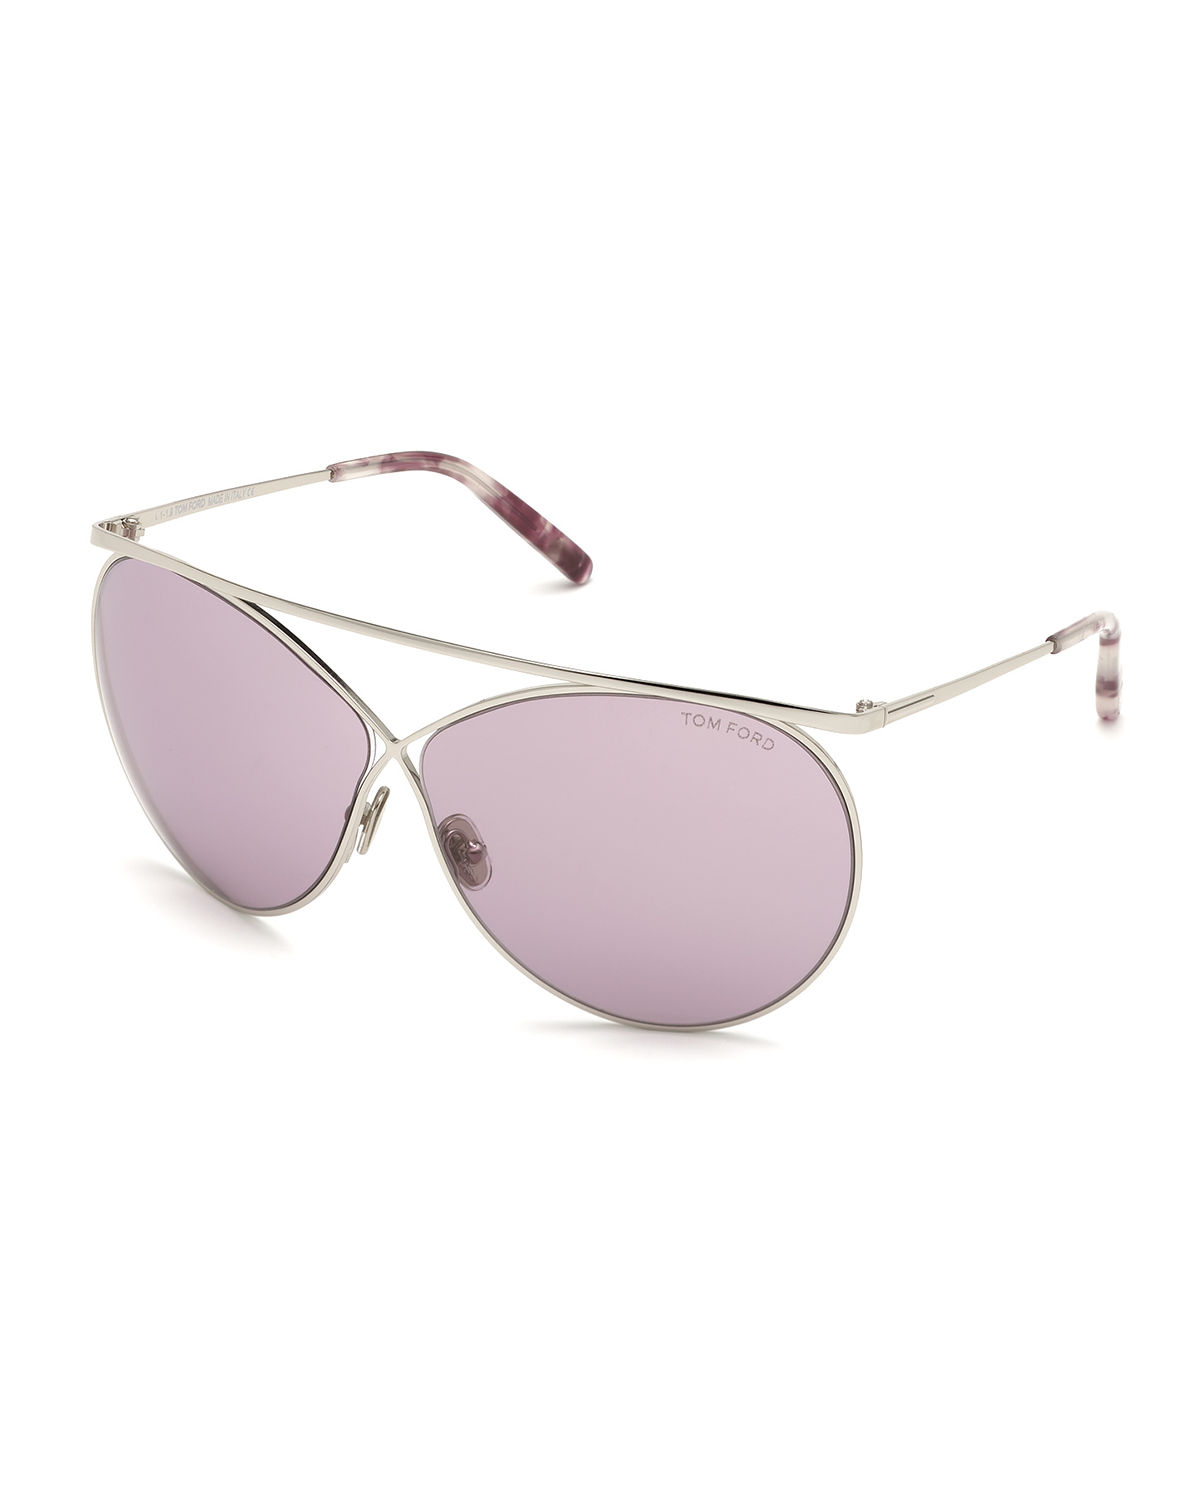 Tom Ford Sunglasses STEVIE METAL BUTTERFLY SUNGLASSES